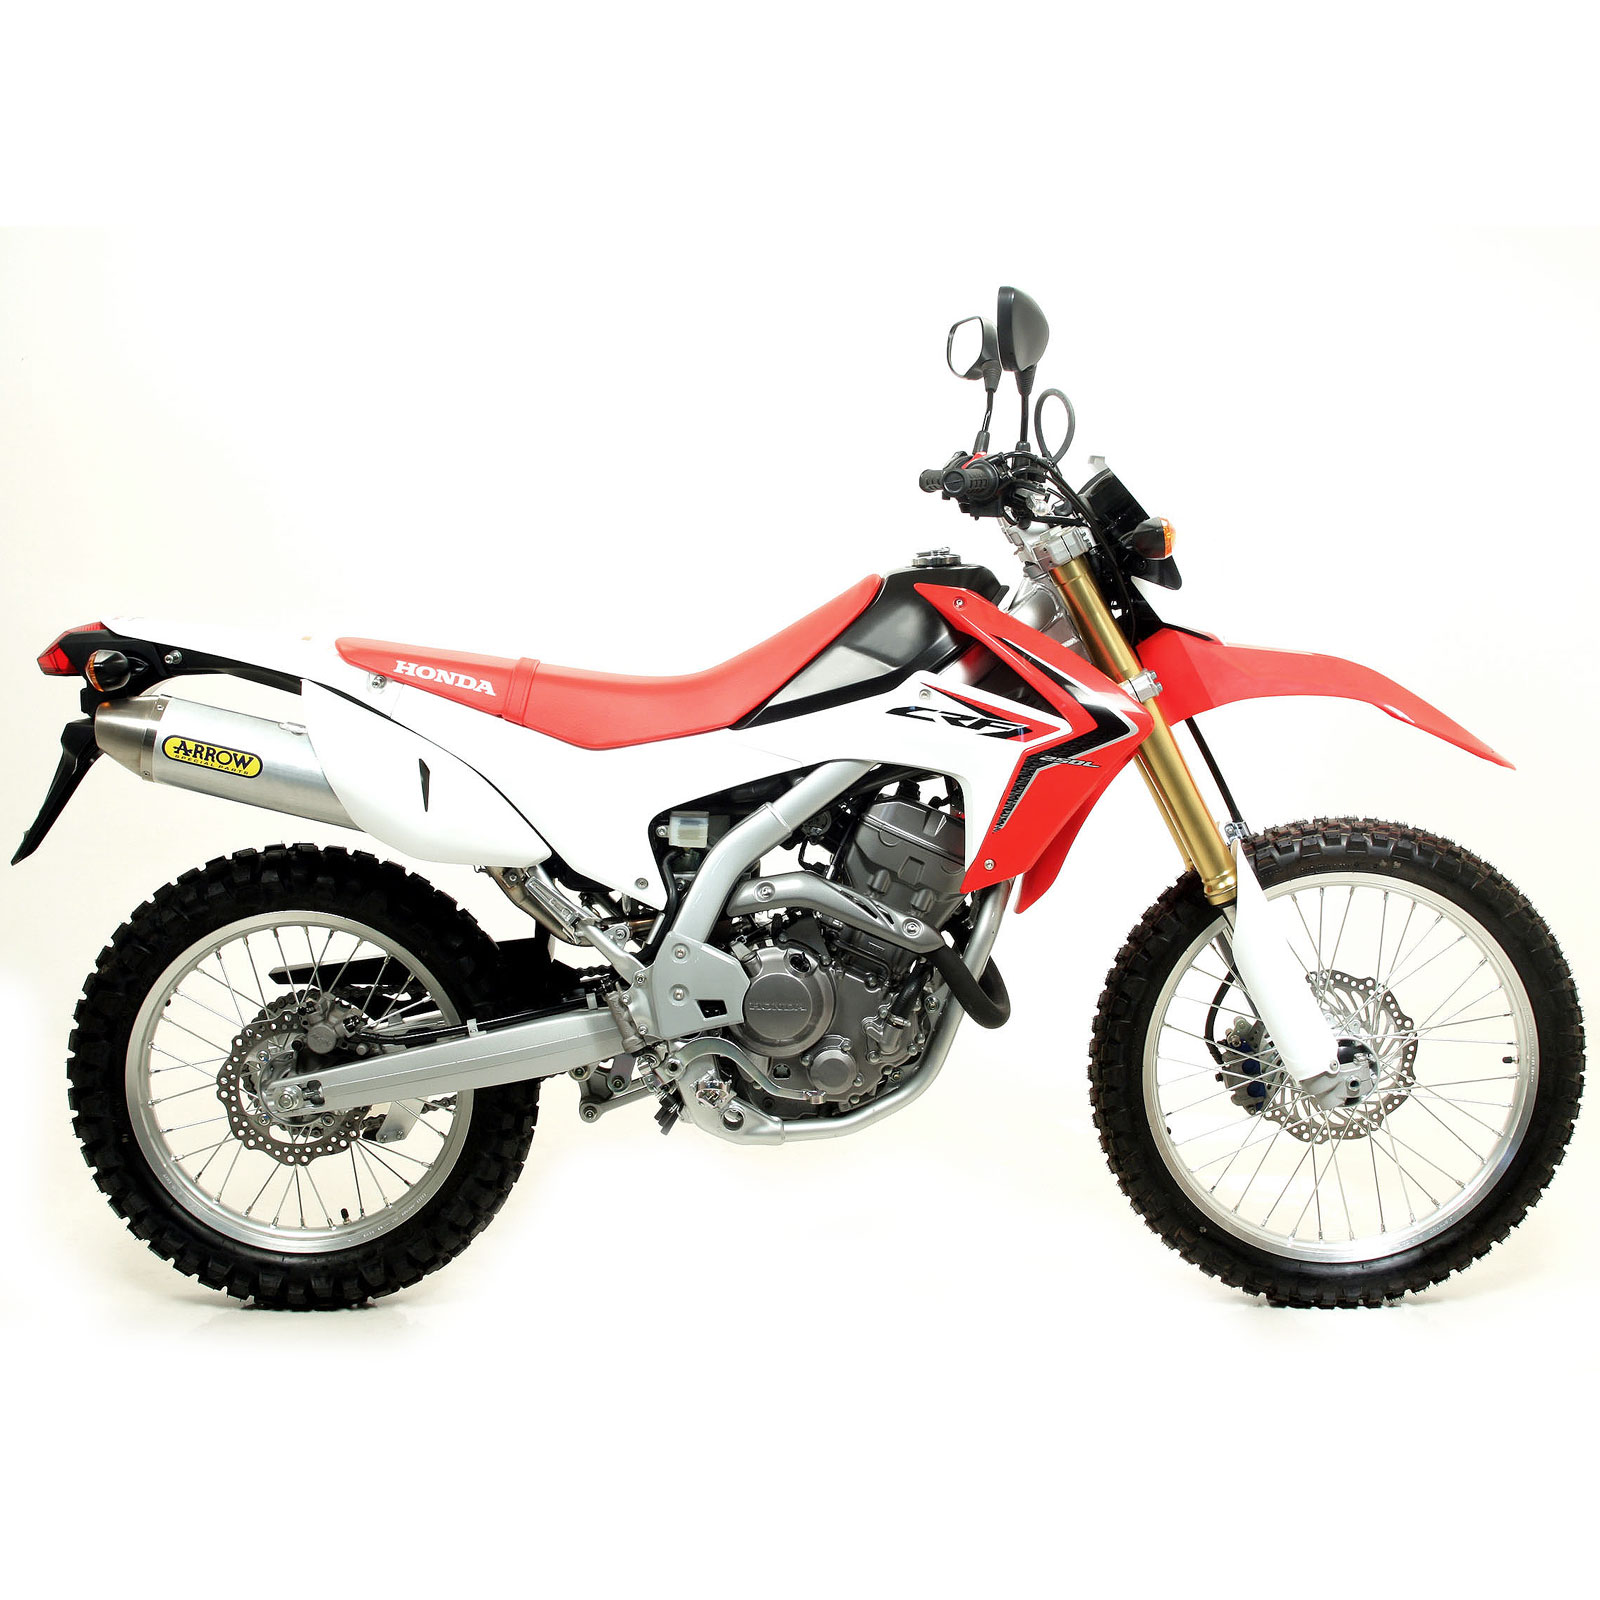 honda crf 250 l 2012 2013 arrow exhaust collector aluminium road silencer ebay. Black Bedroom Furniture Sets. Home Design Ideas